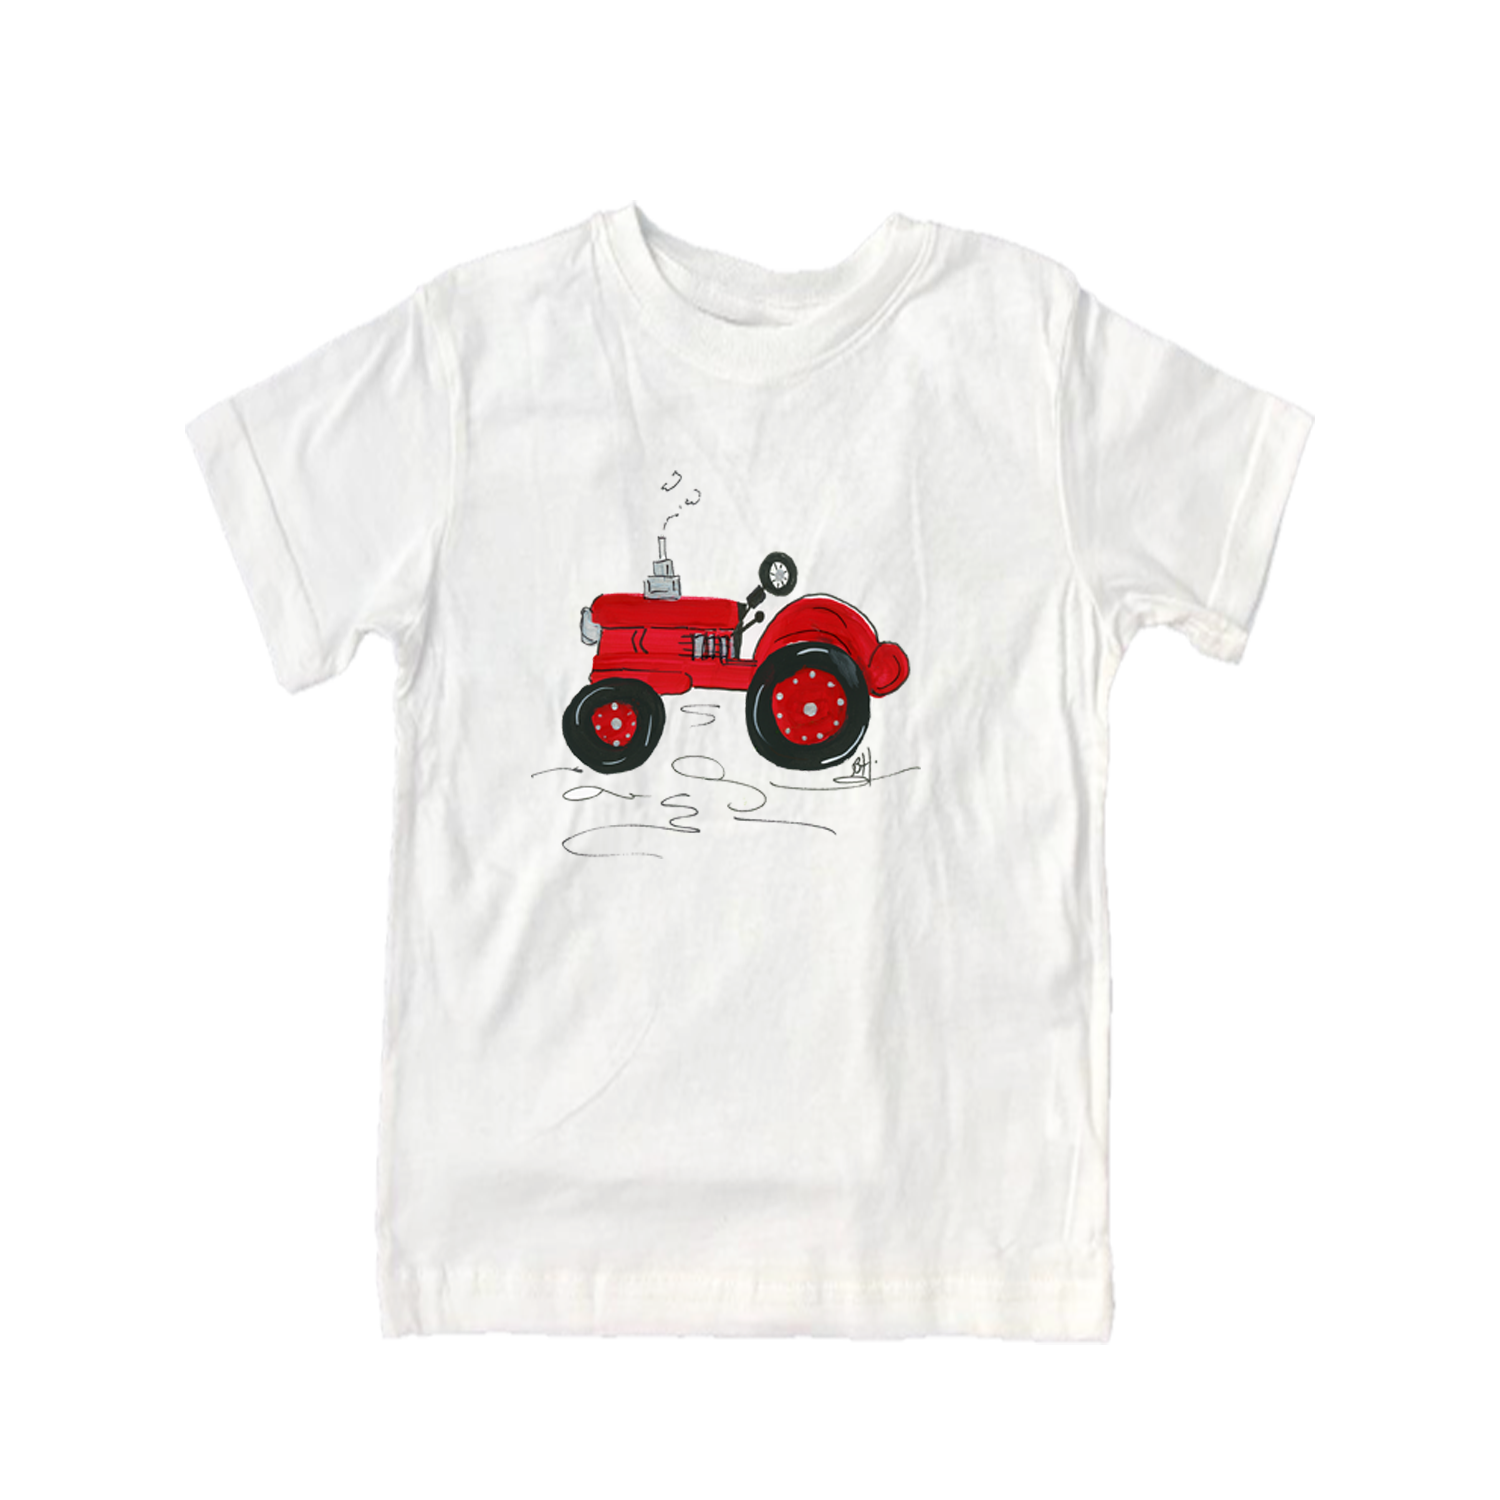 Boys Tee Shirt TS1042